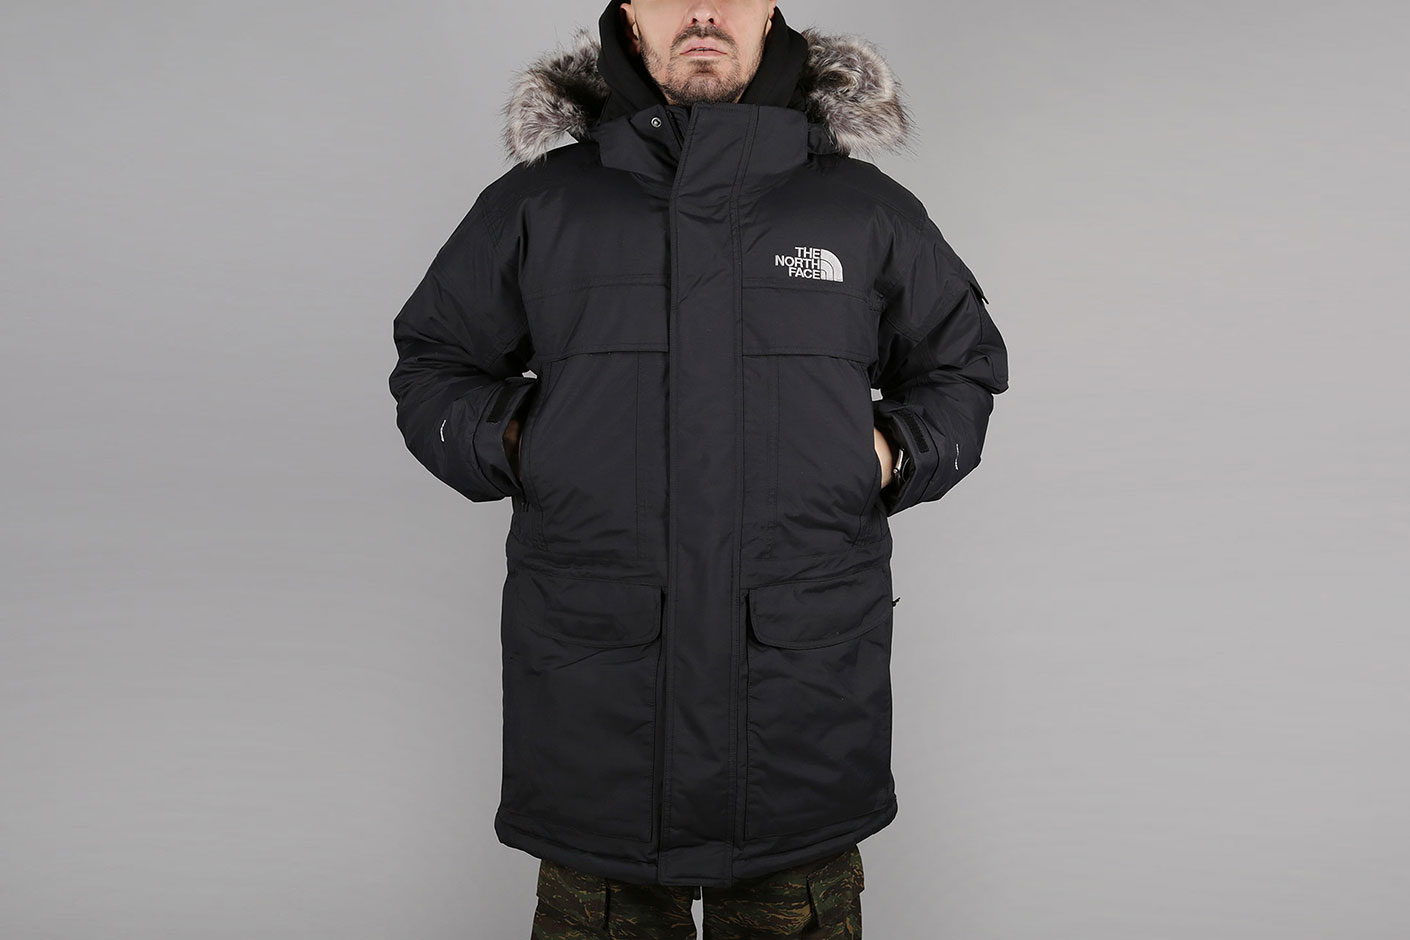 Мужской пуховик The North Face  The North Face Mcmurdo Parka